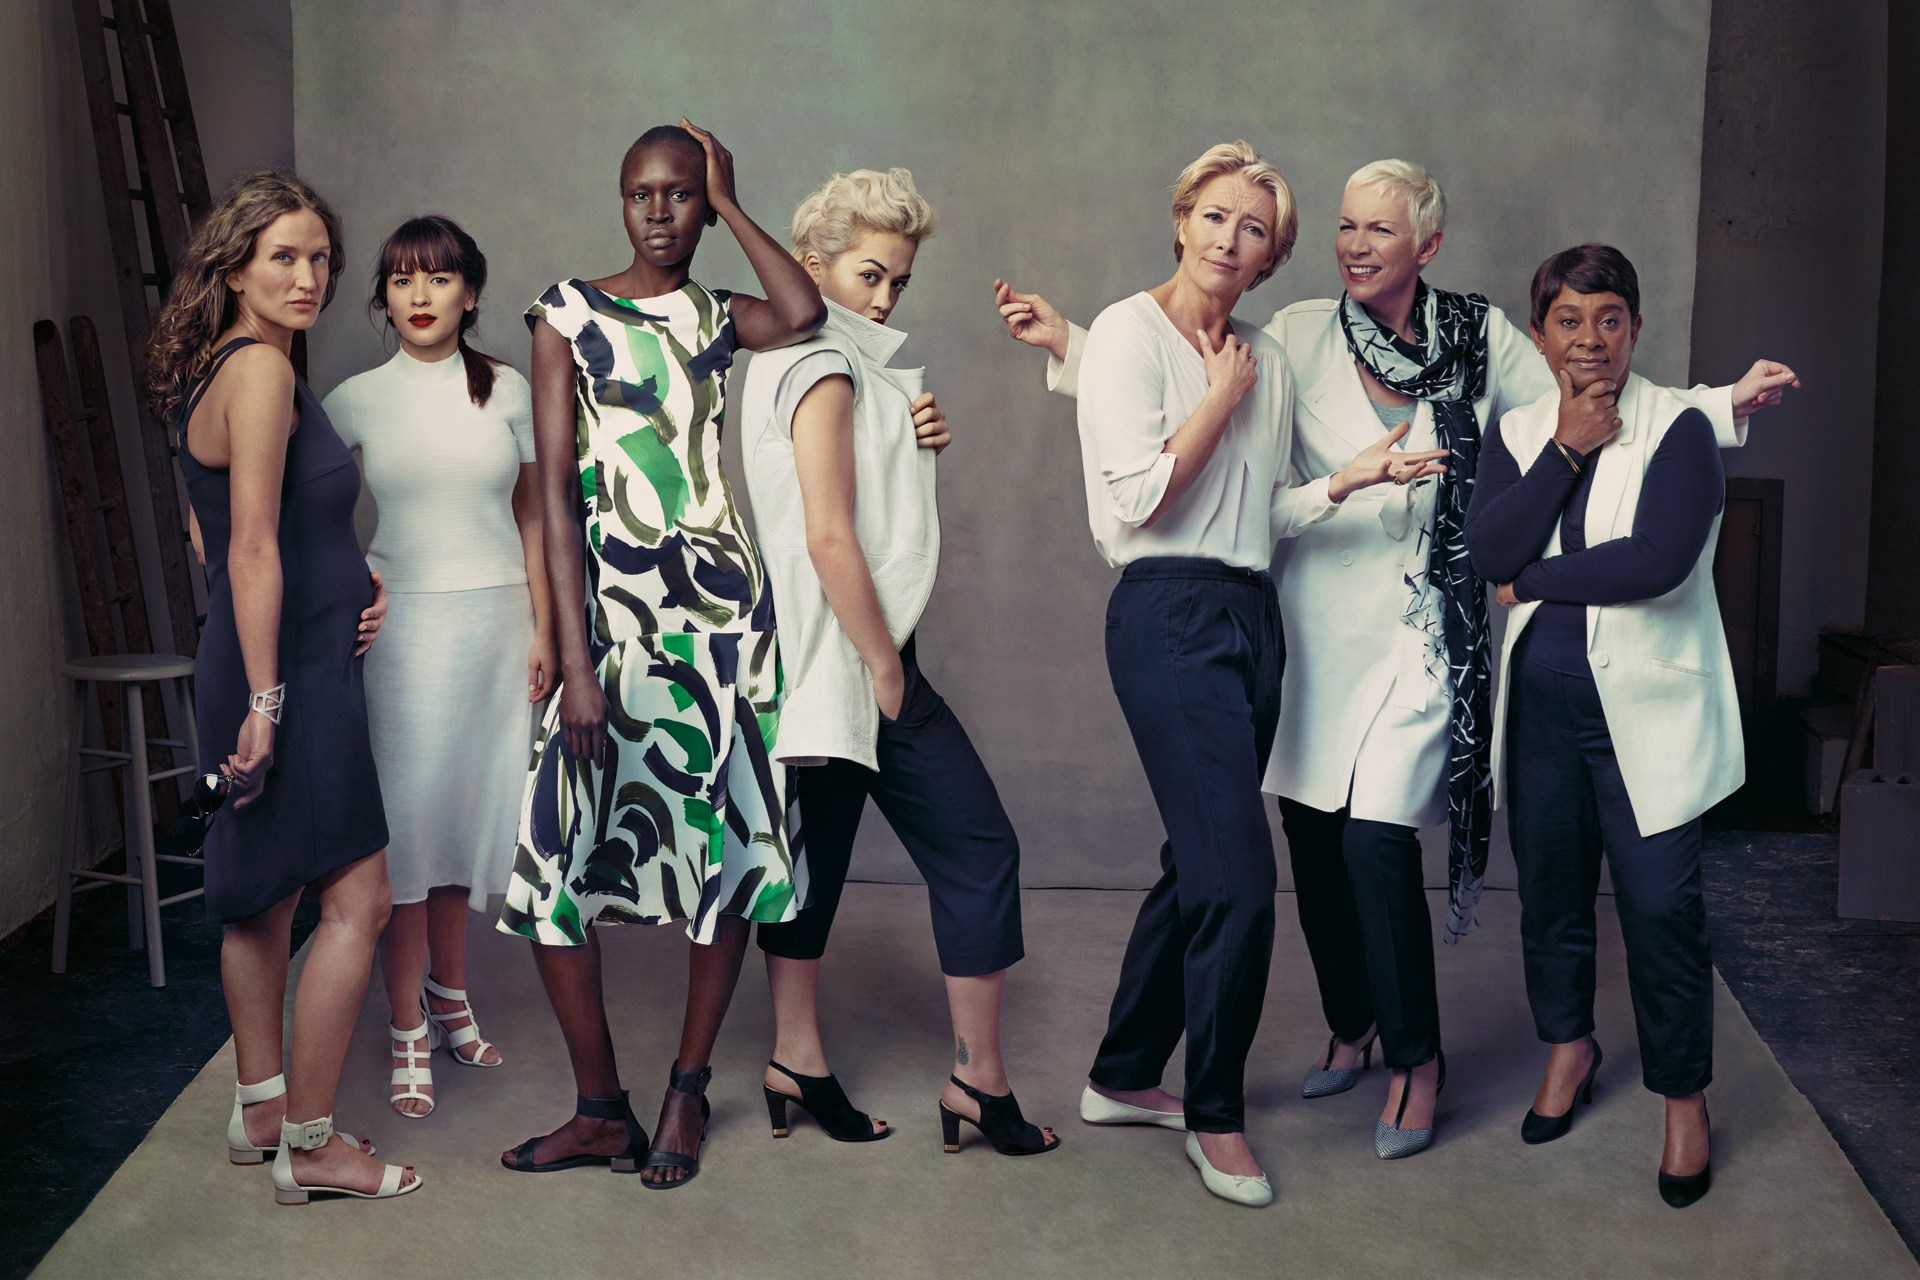 The leading ladies of Marks & Spencer